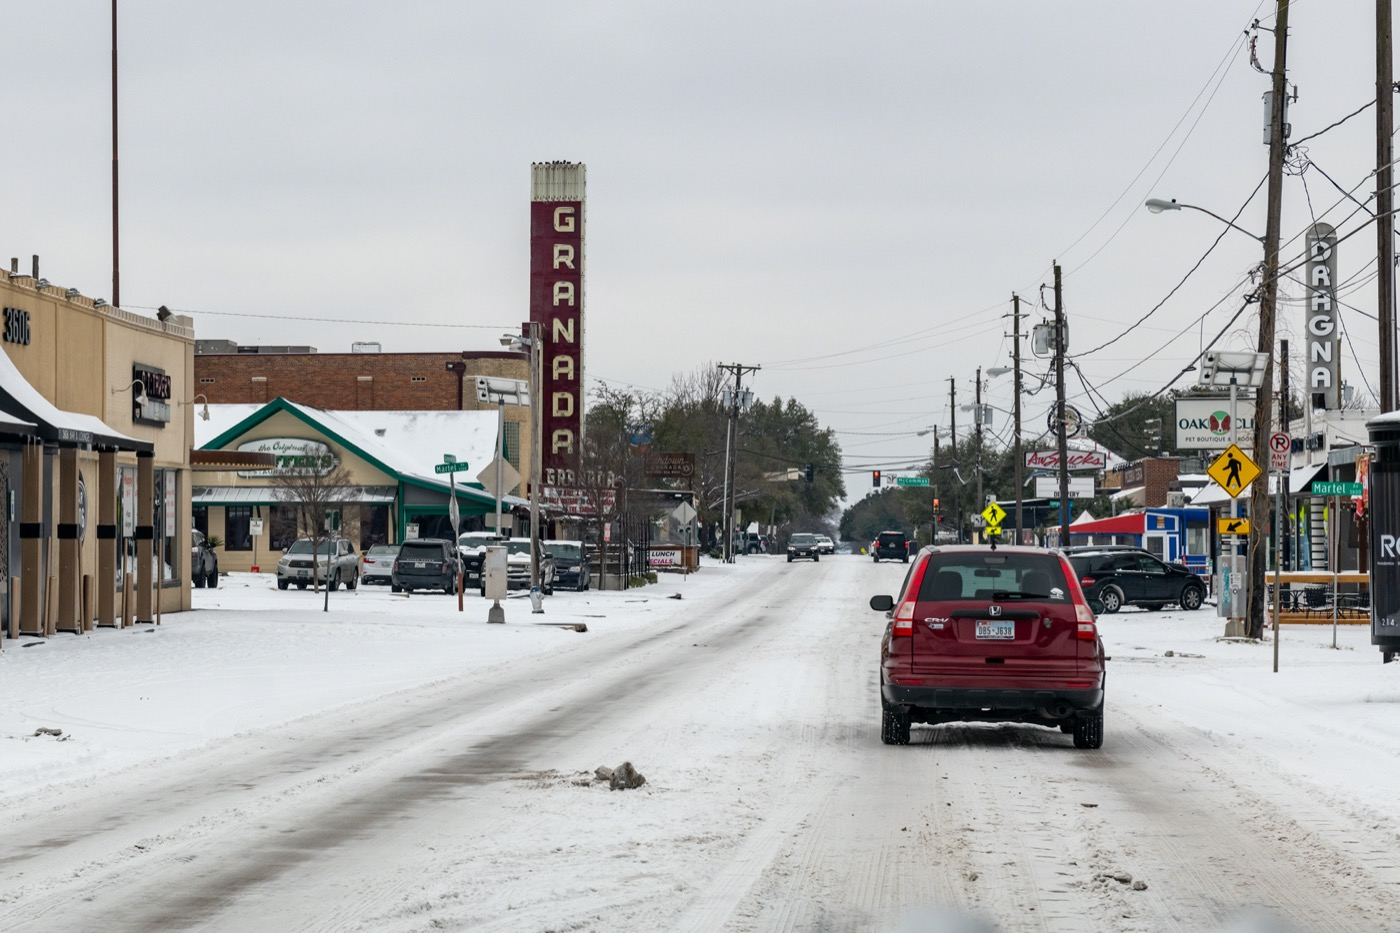 a snow covered street in dallas texas. lots of ice still on the street as a car drives down the street, lined with shops and a movie theater. no electric lights are present